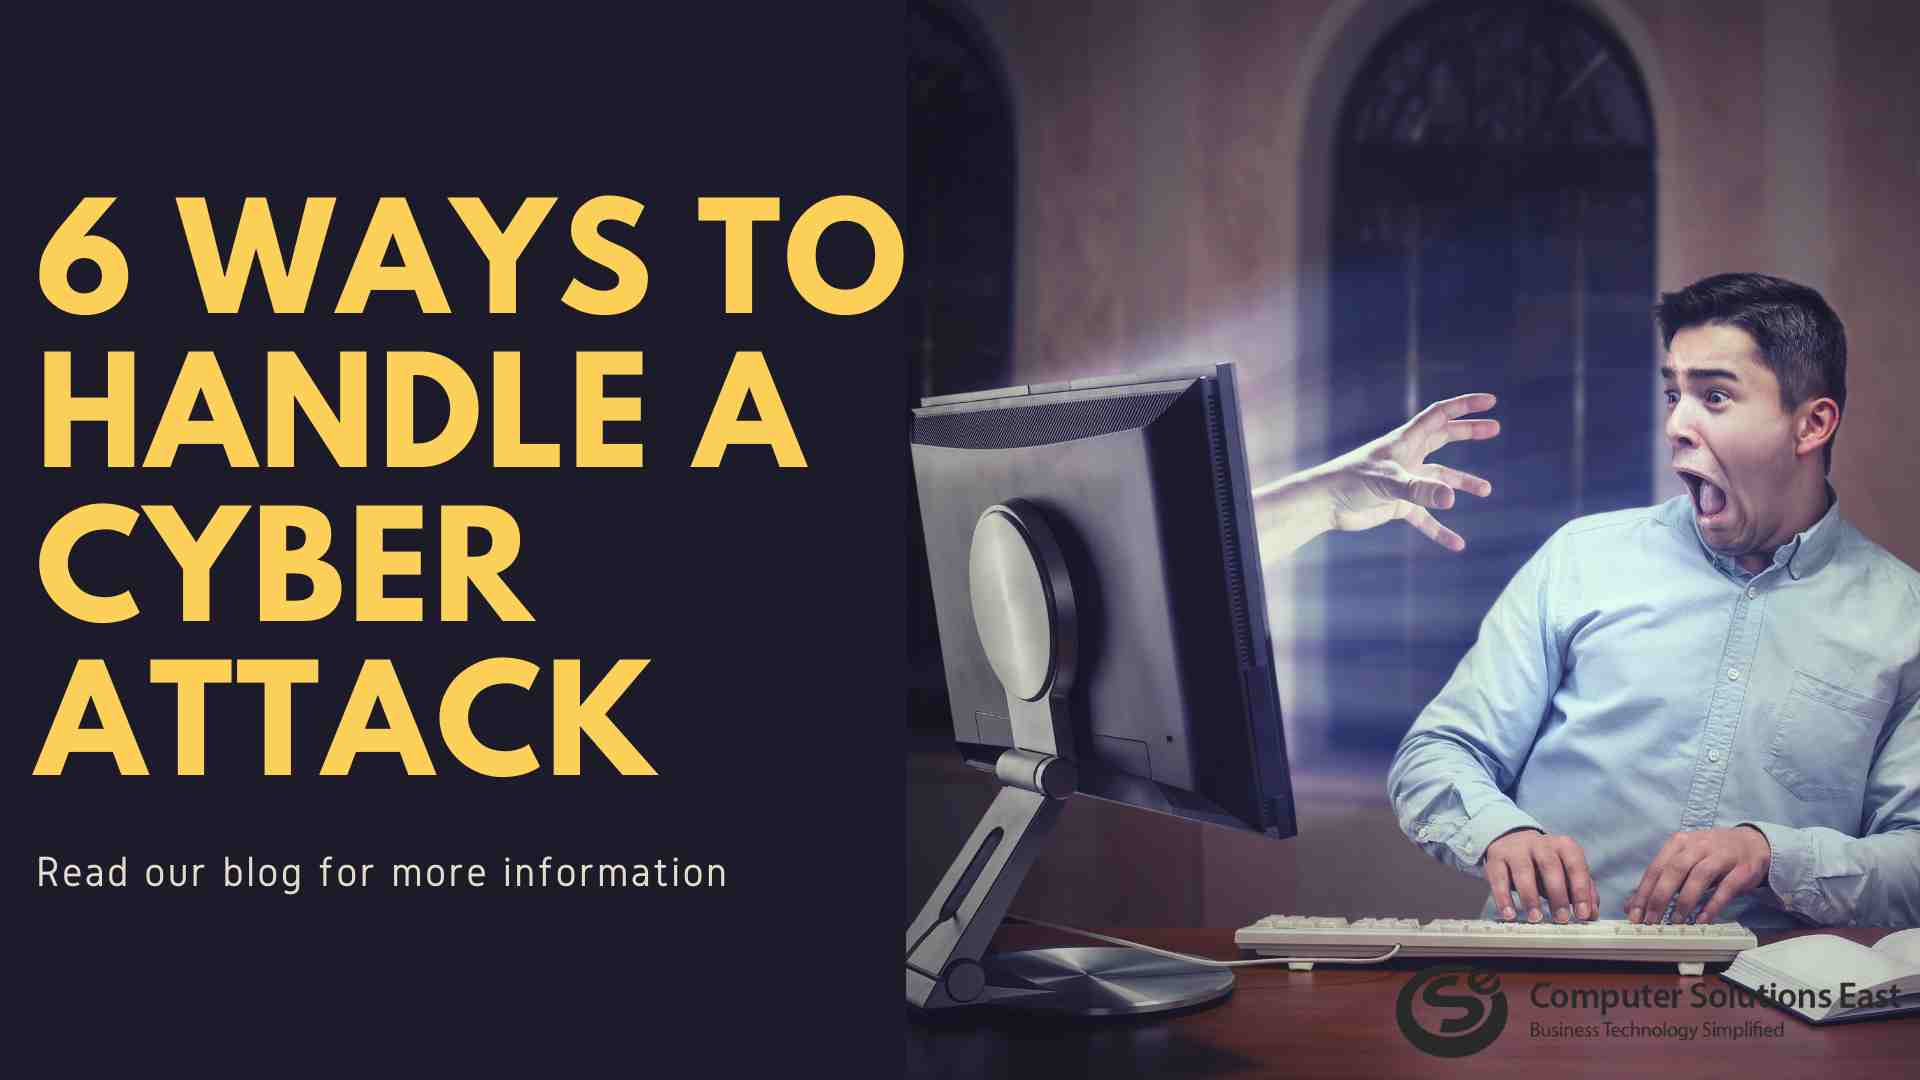 How to Handle a Cyber Attack